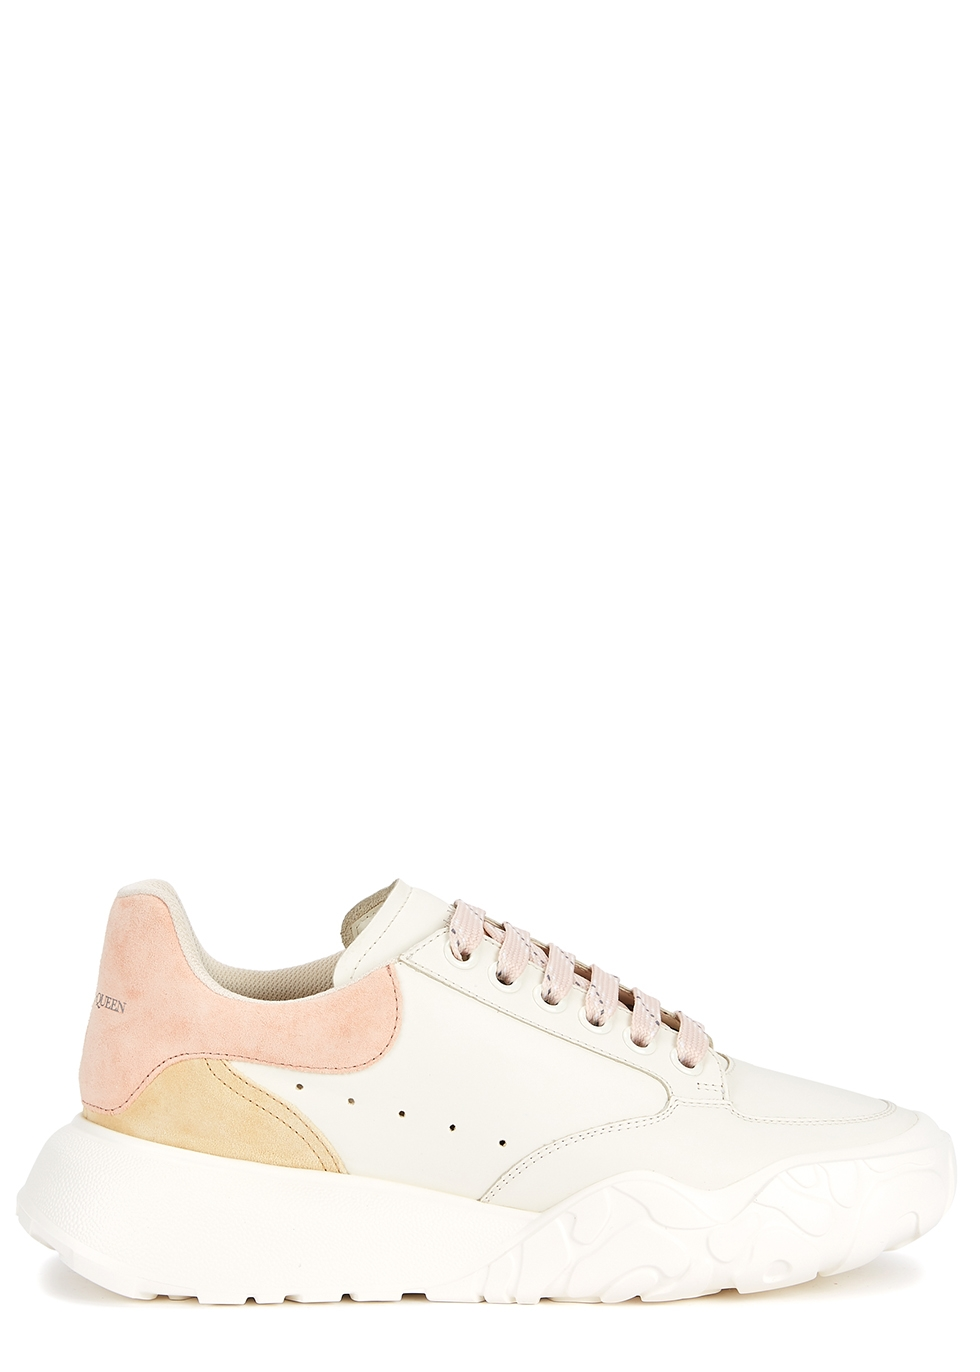 Court white panelled leather sneakers